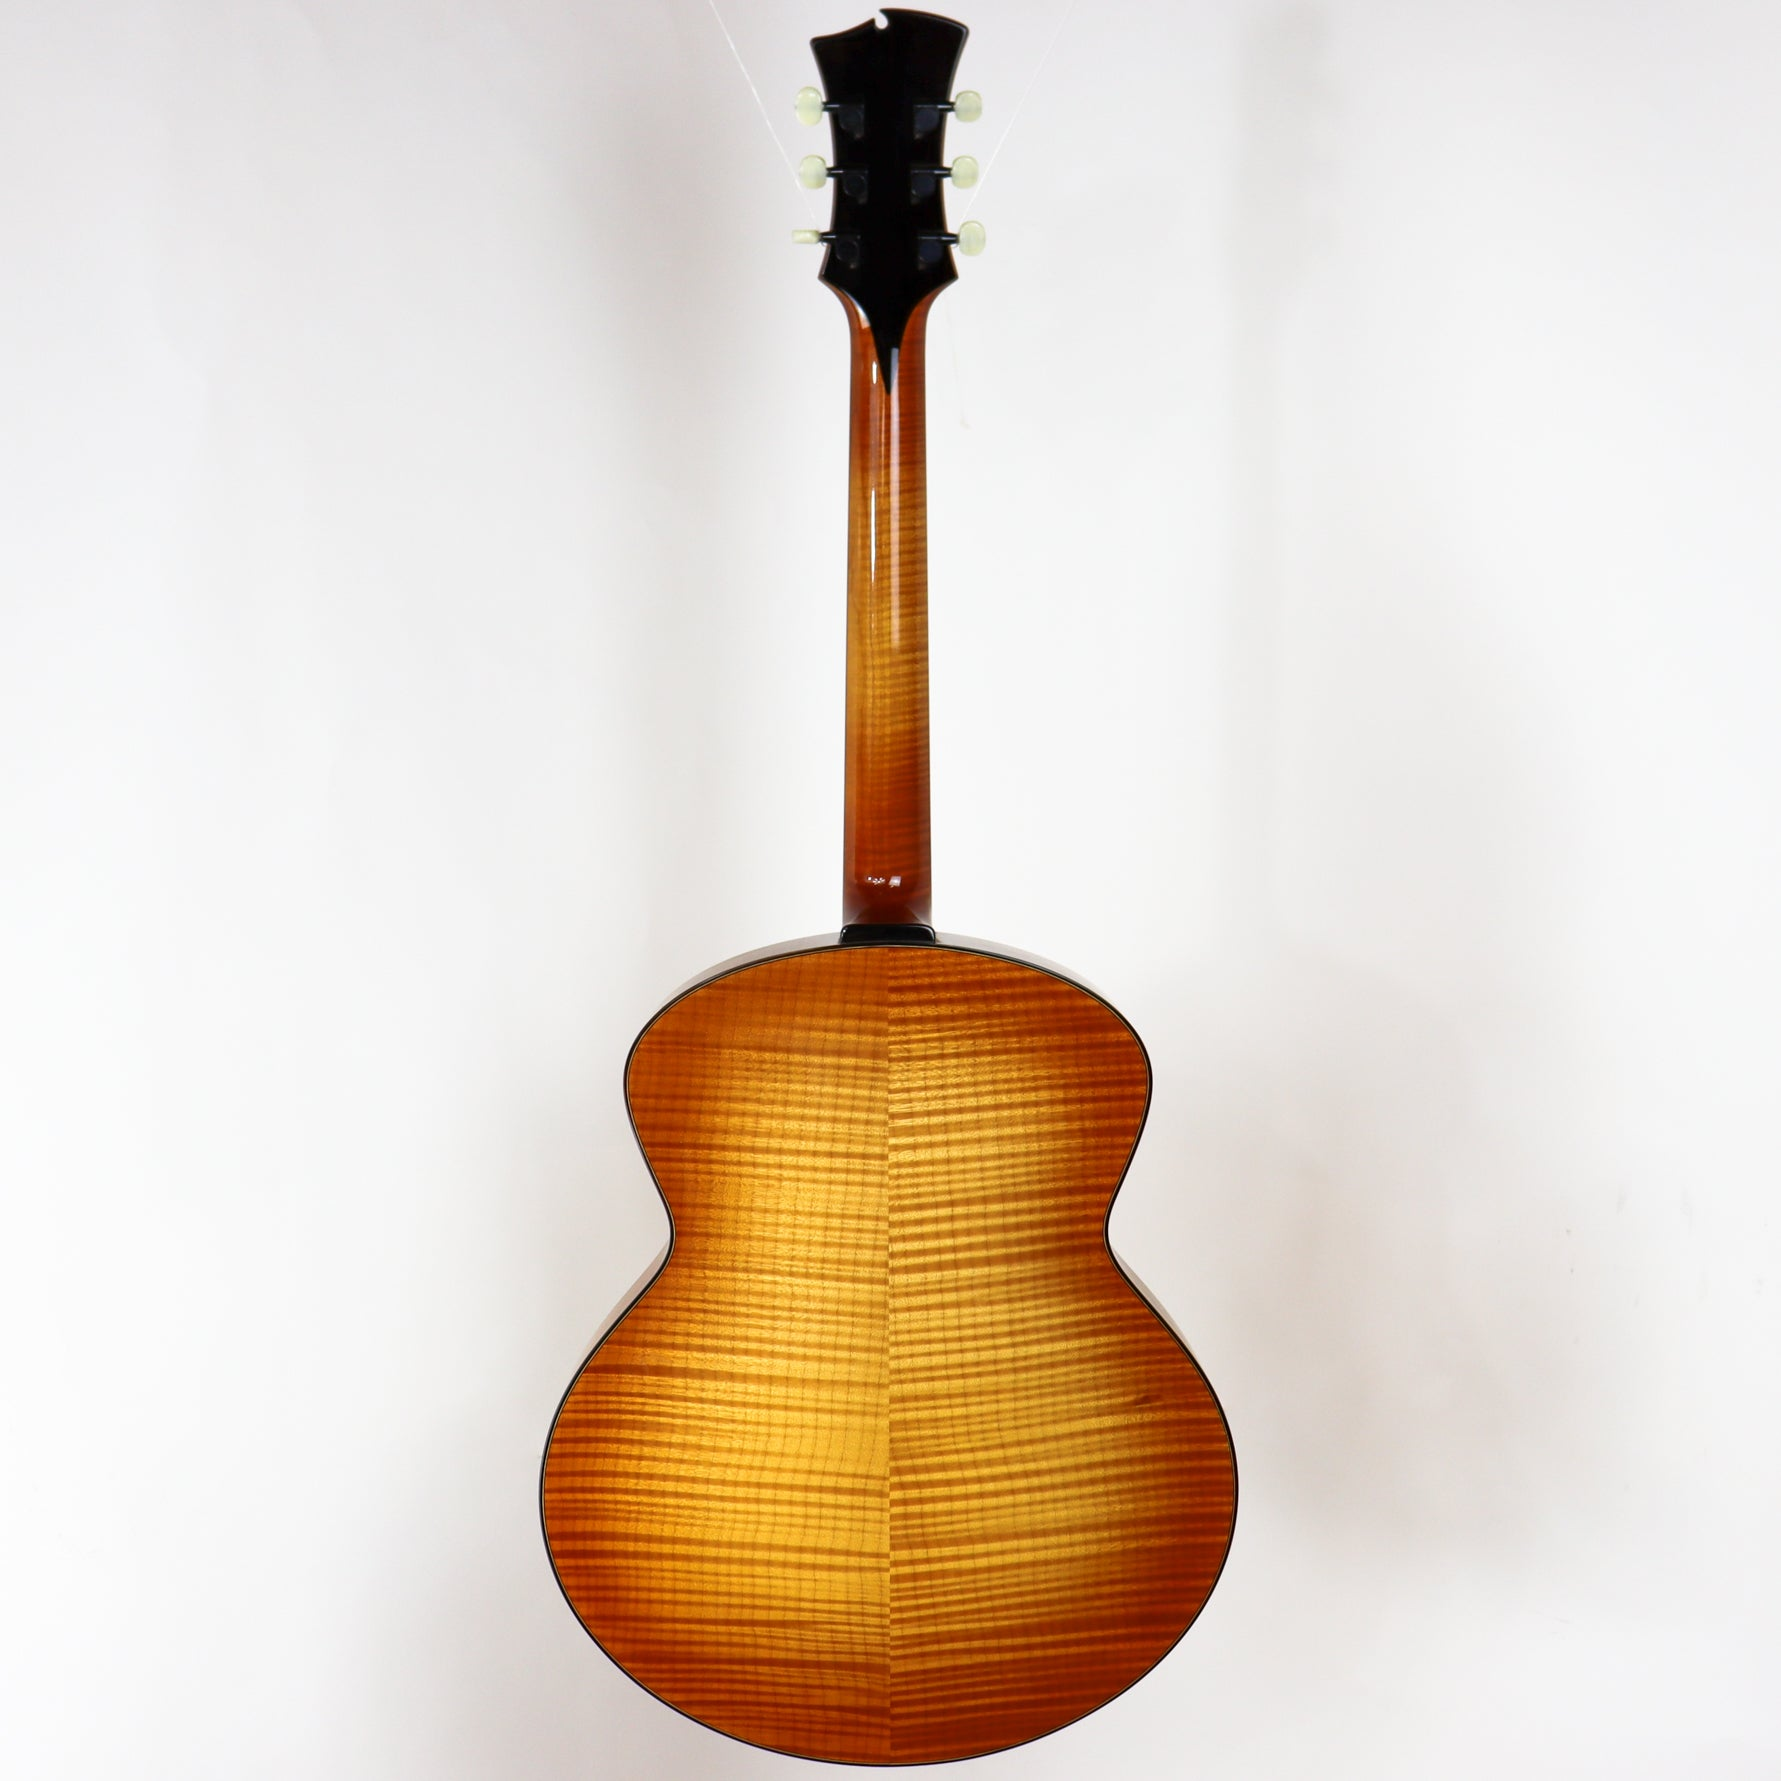 D'Ambrosio 2008 Custom Oval Hole Archtop, Bearclaw spruce, Flame maple, with Original Hardshell Case